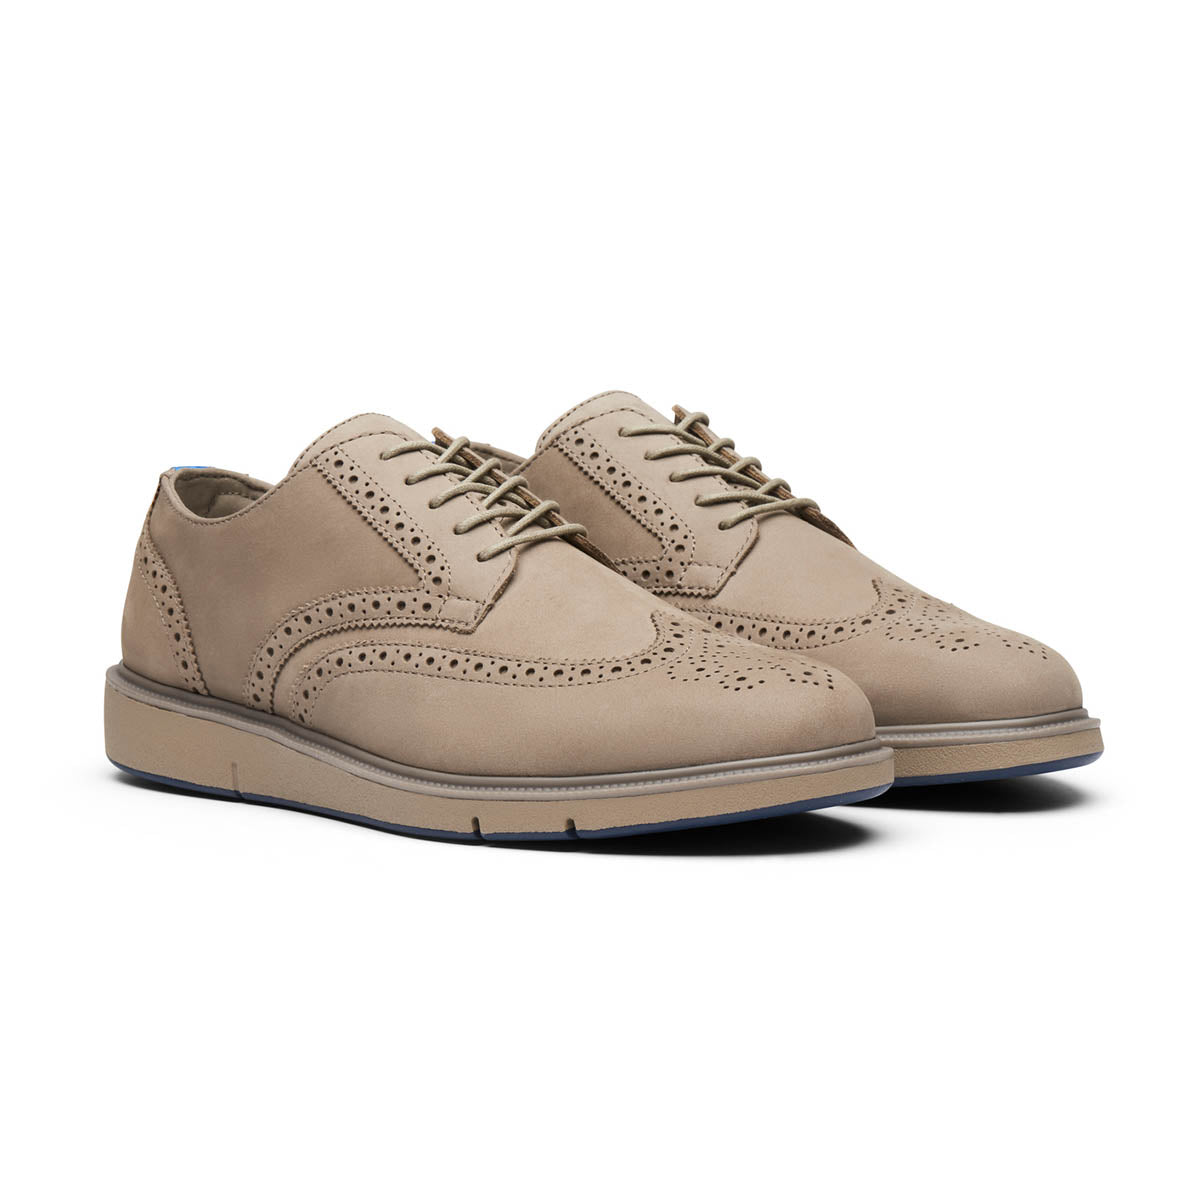 Motion Wing Tip Oxford - background::white,variant::Timber Wolf/Navy